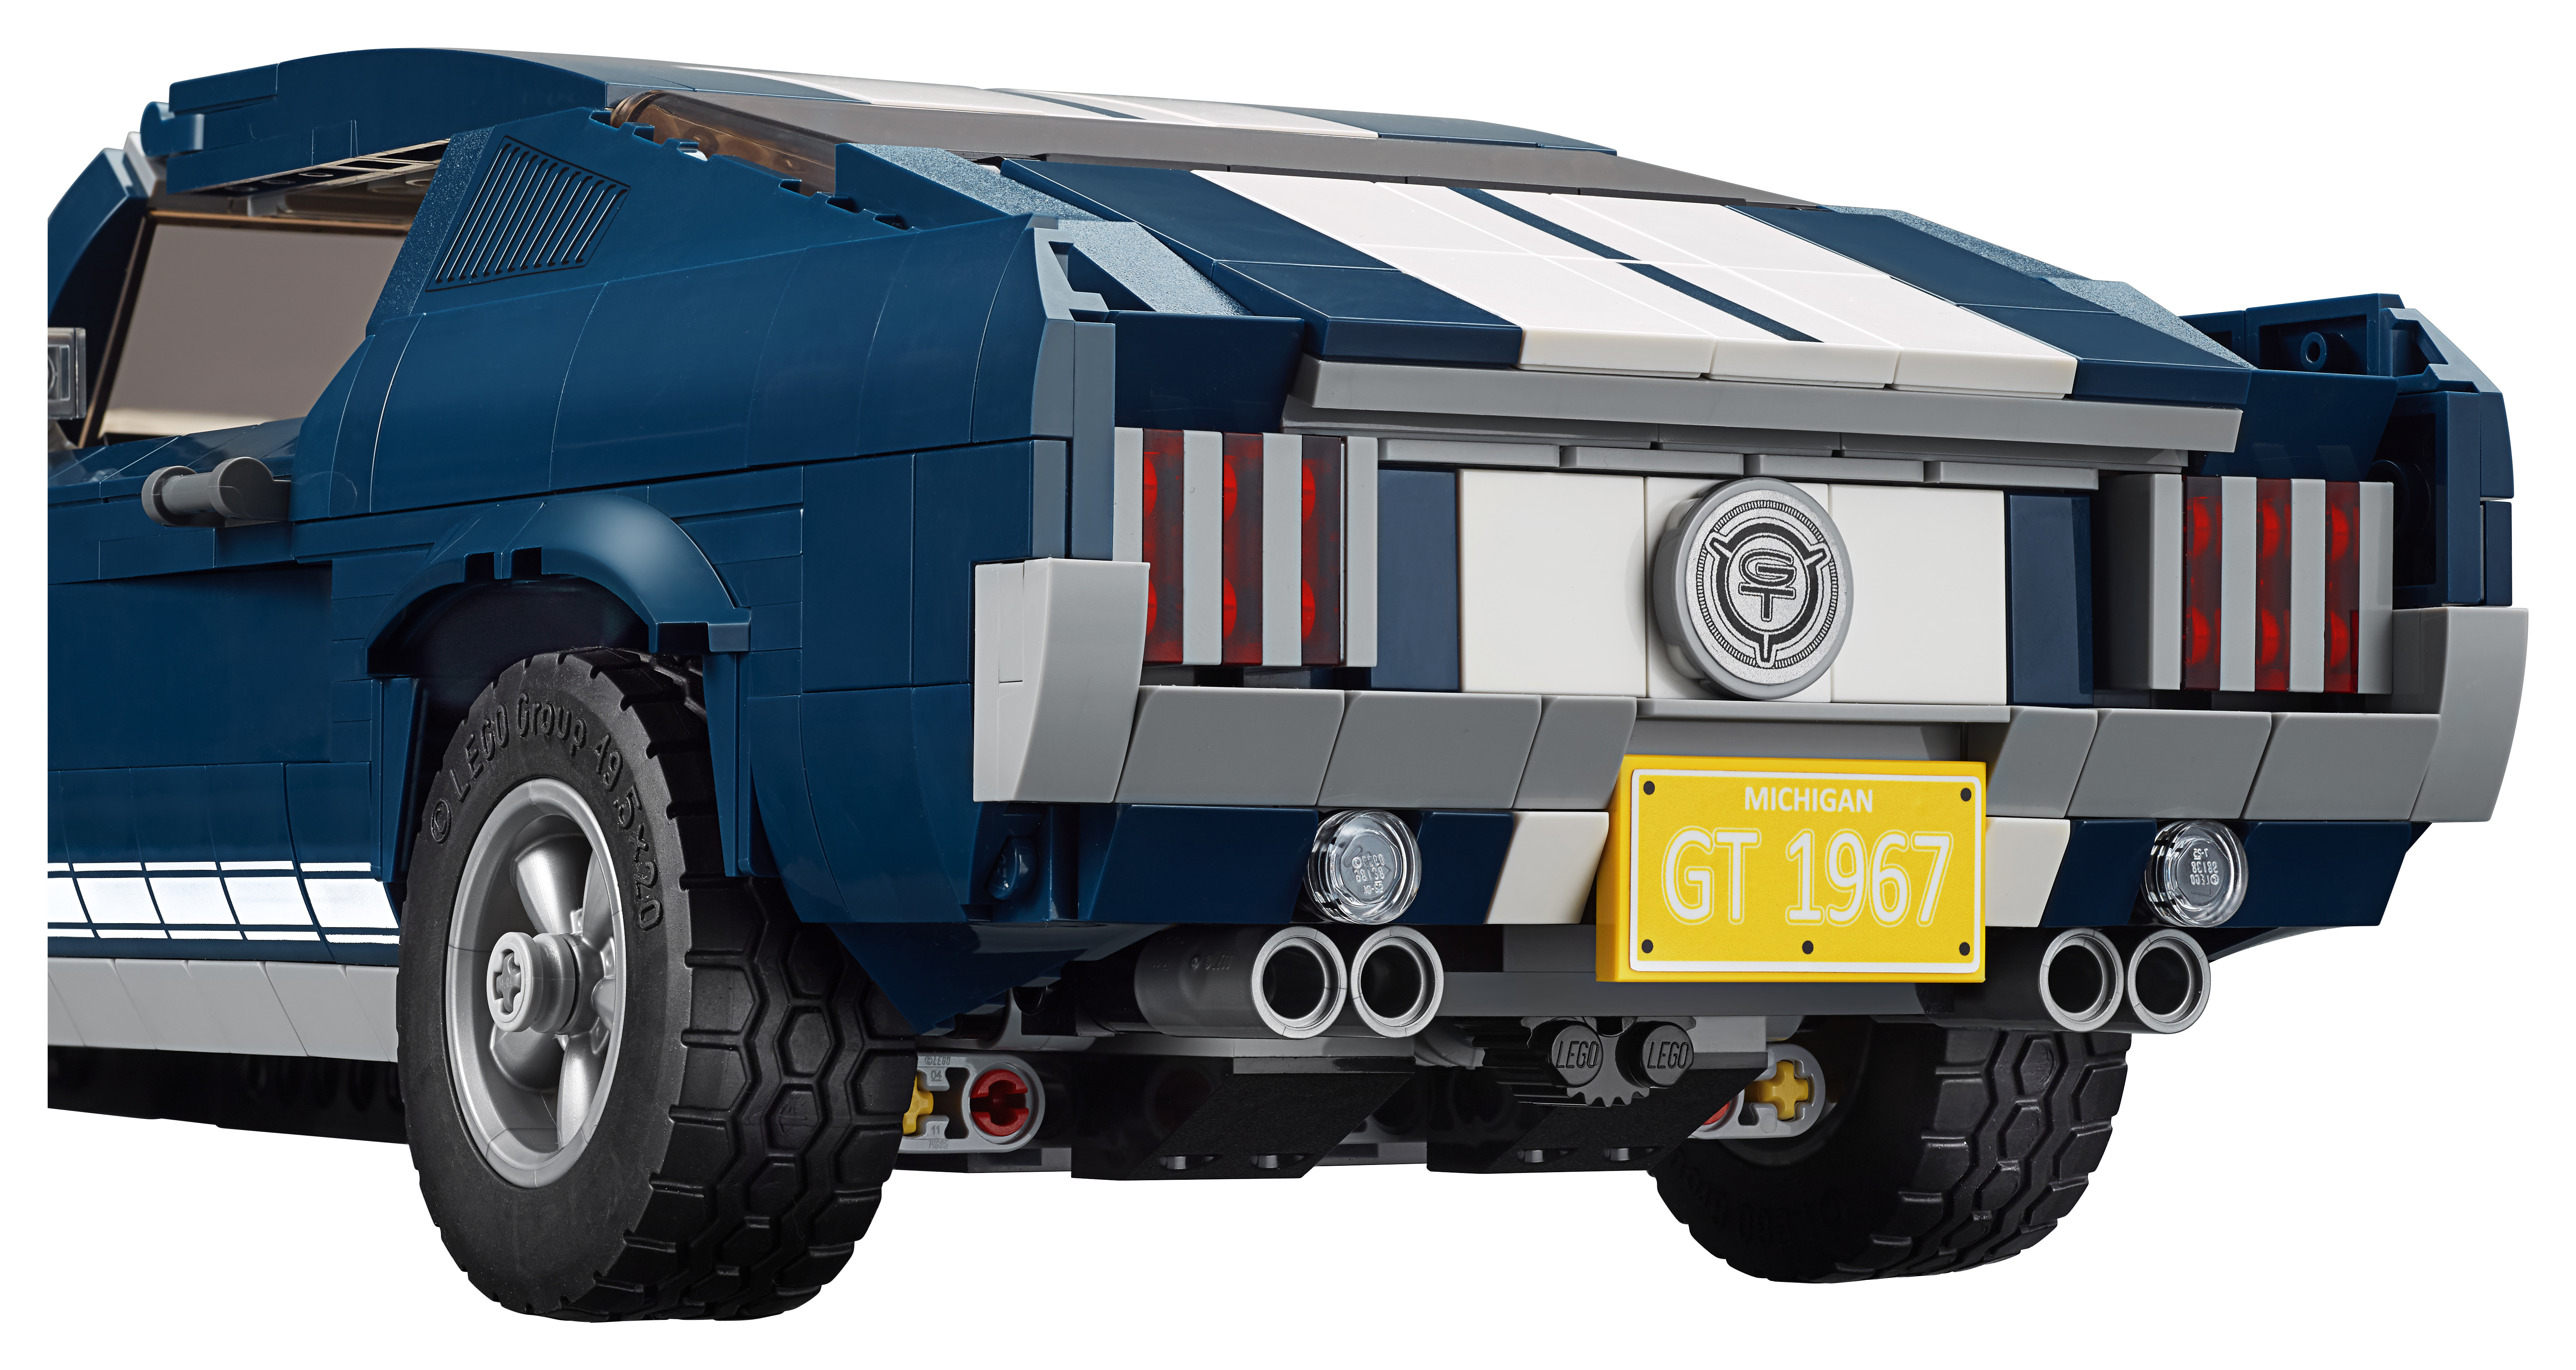 Lego offers classic 1967 ford mustang kit to fulfill your pony car dreams top speed